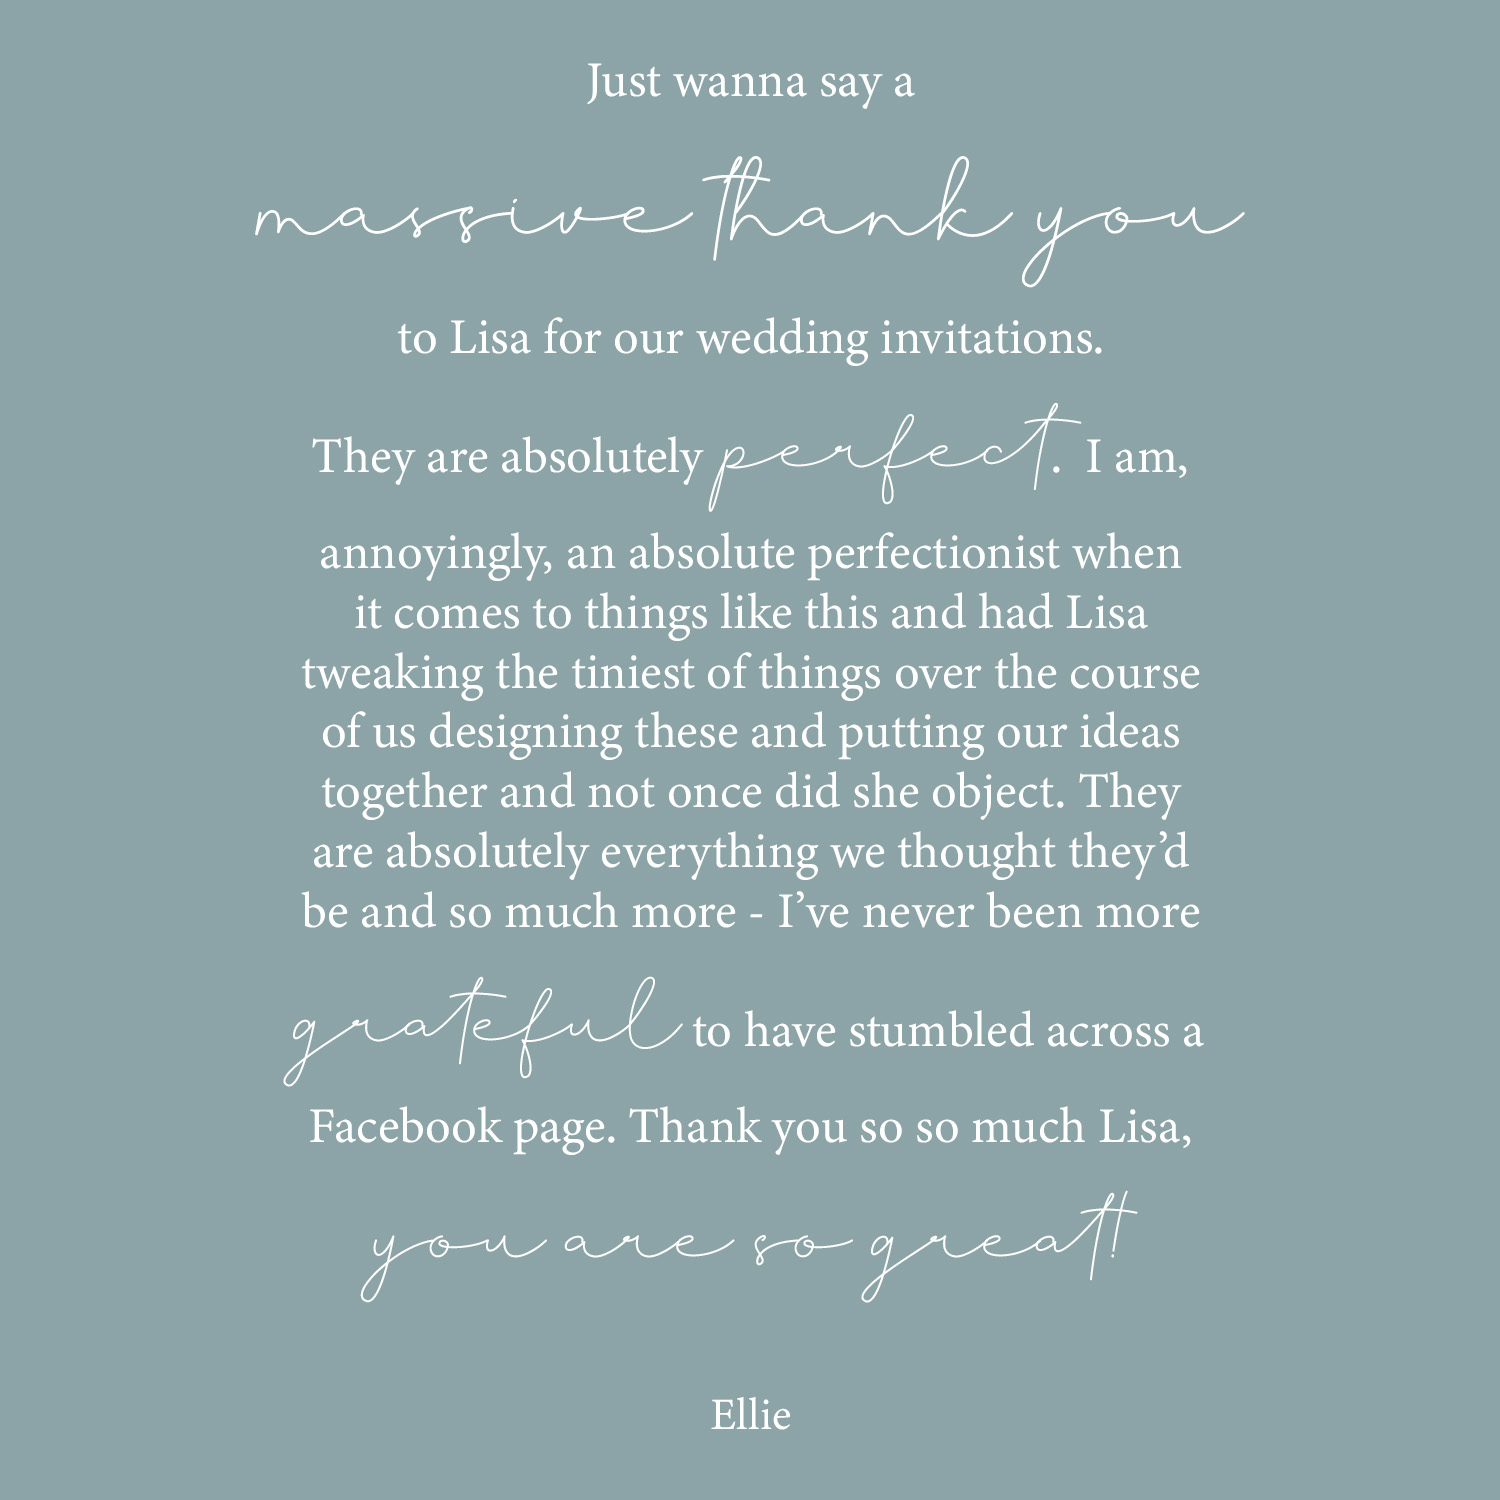 wedding invitation order graphic review wording blue background